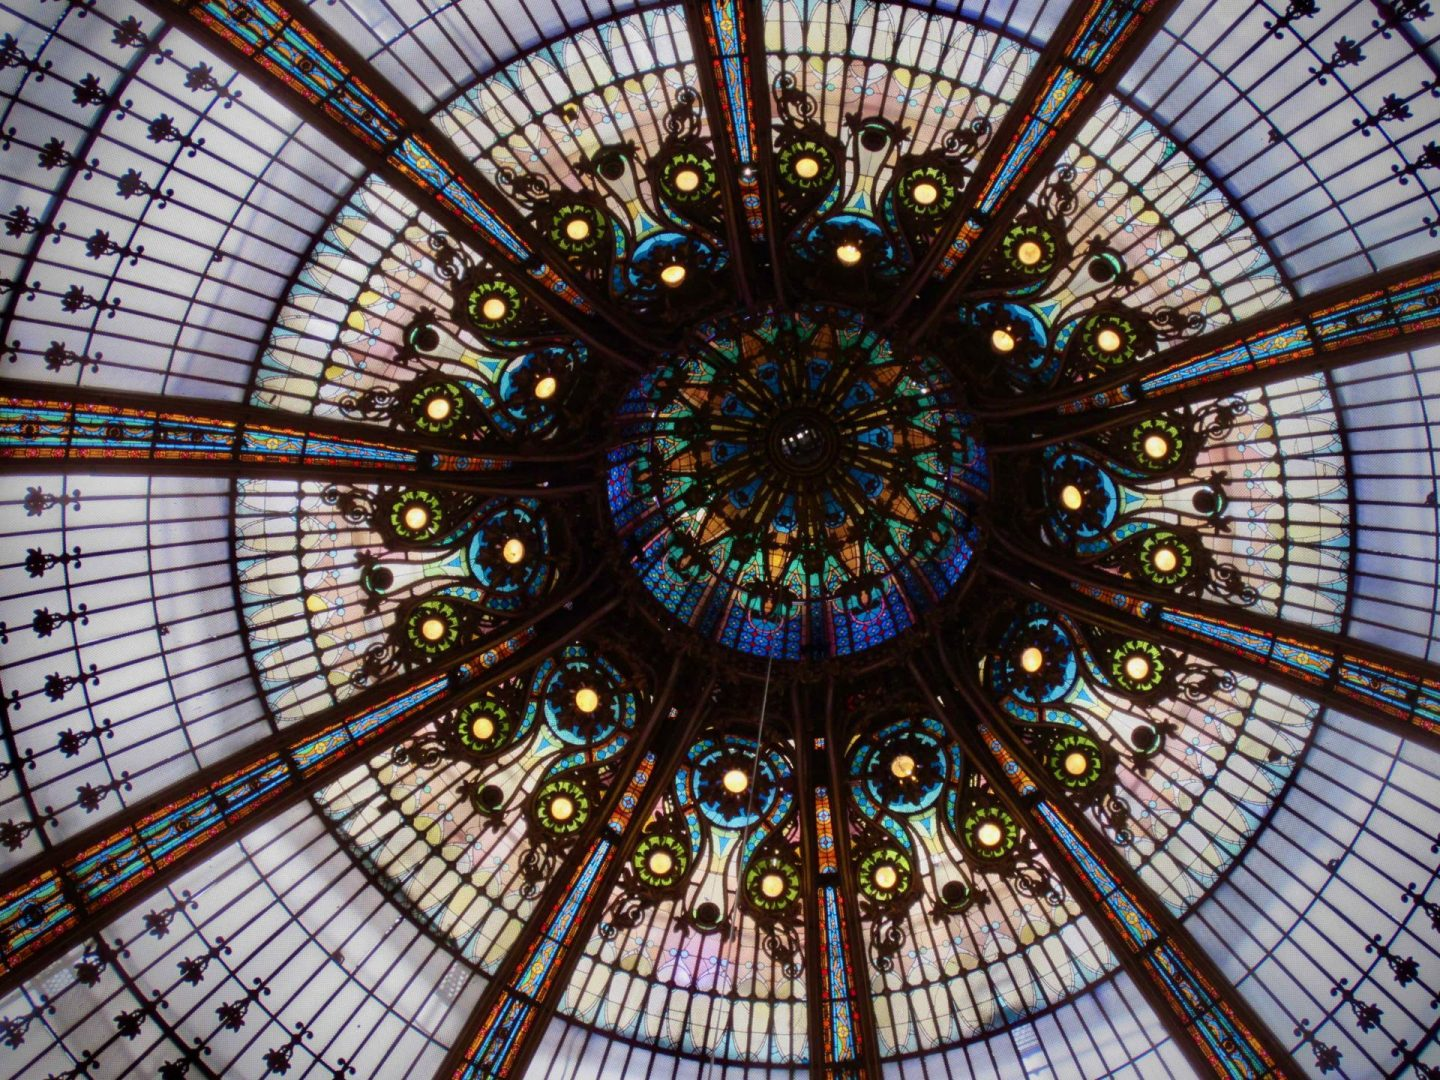 Galeries Lafayette Ceiling | Exploring Montmartre in Paris Day 4 | The Spectacular Adventurer